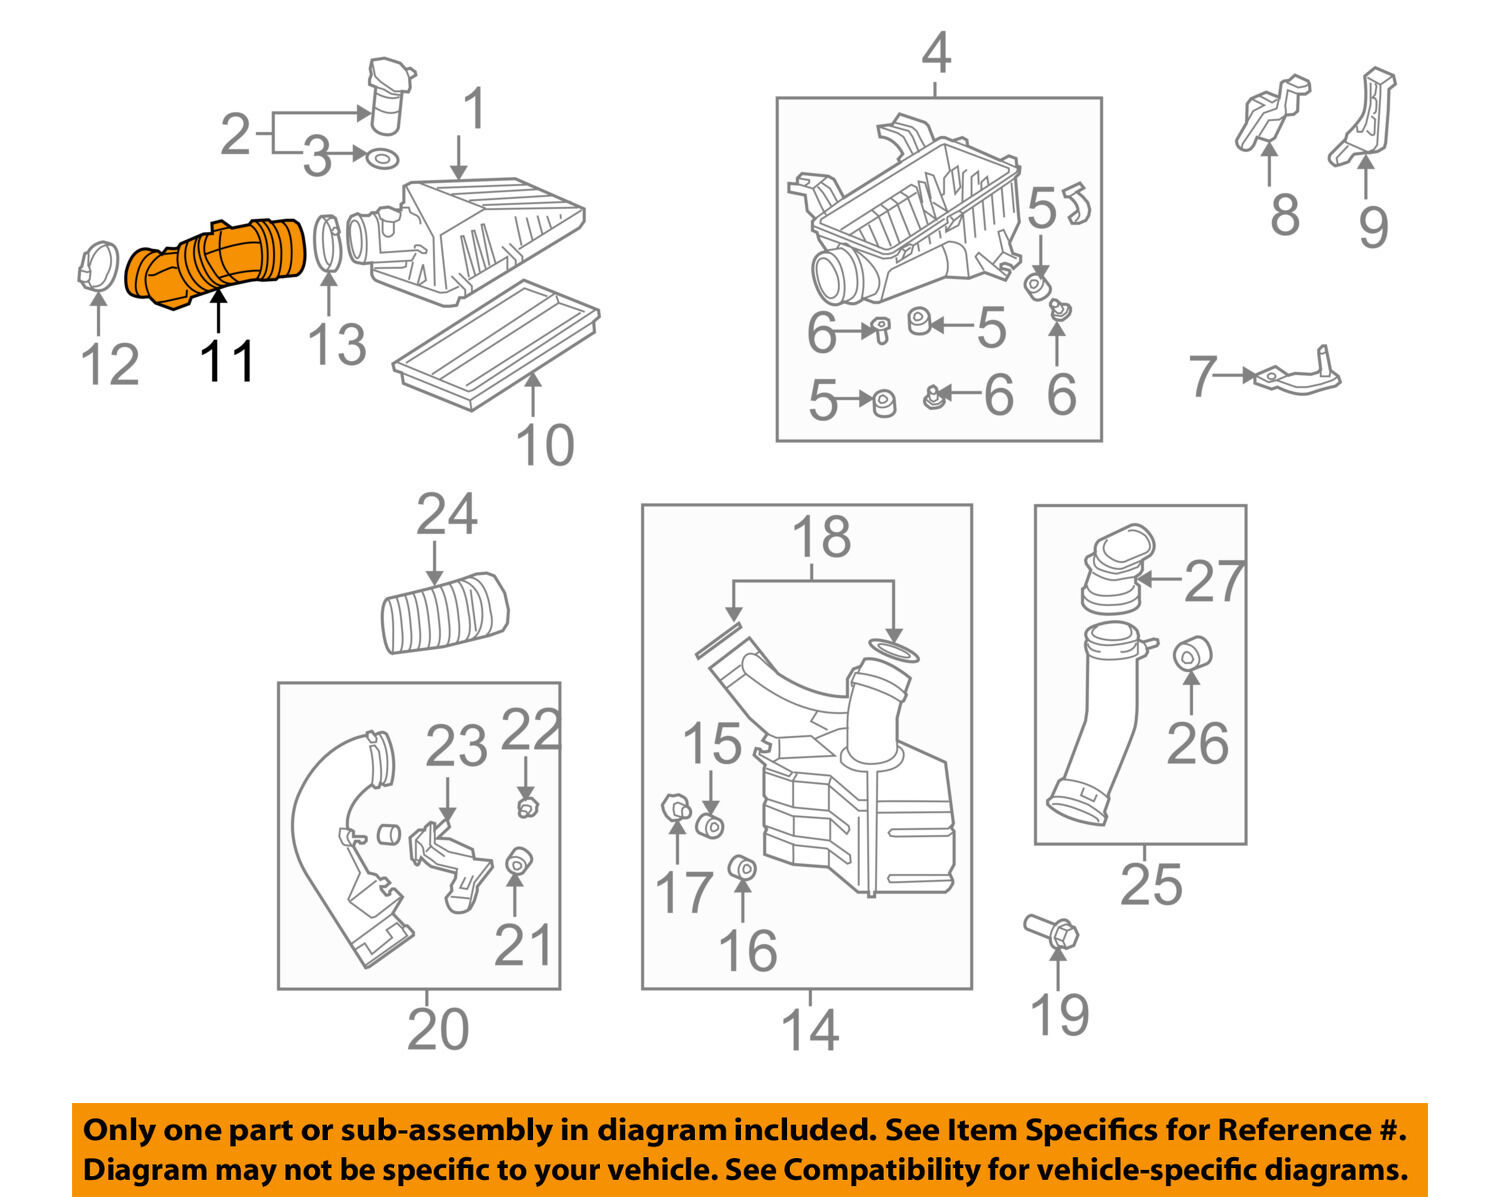 Honda Oem 06 11 Civic Air Cleaner Intake Tube Duct Hose 17228rrba01 2011 Si Engine Diagram 1 Of 2only Available